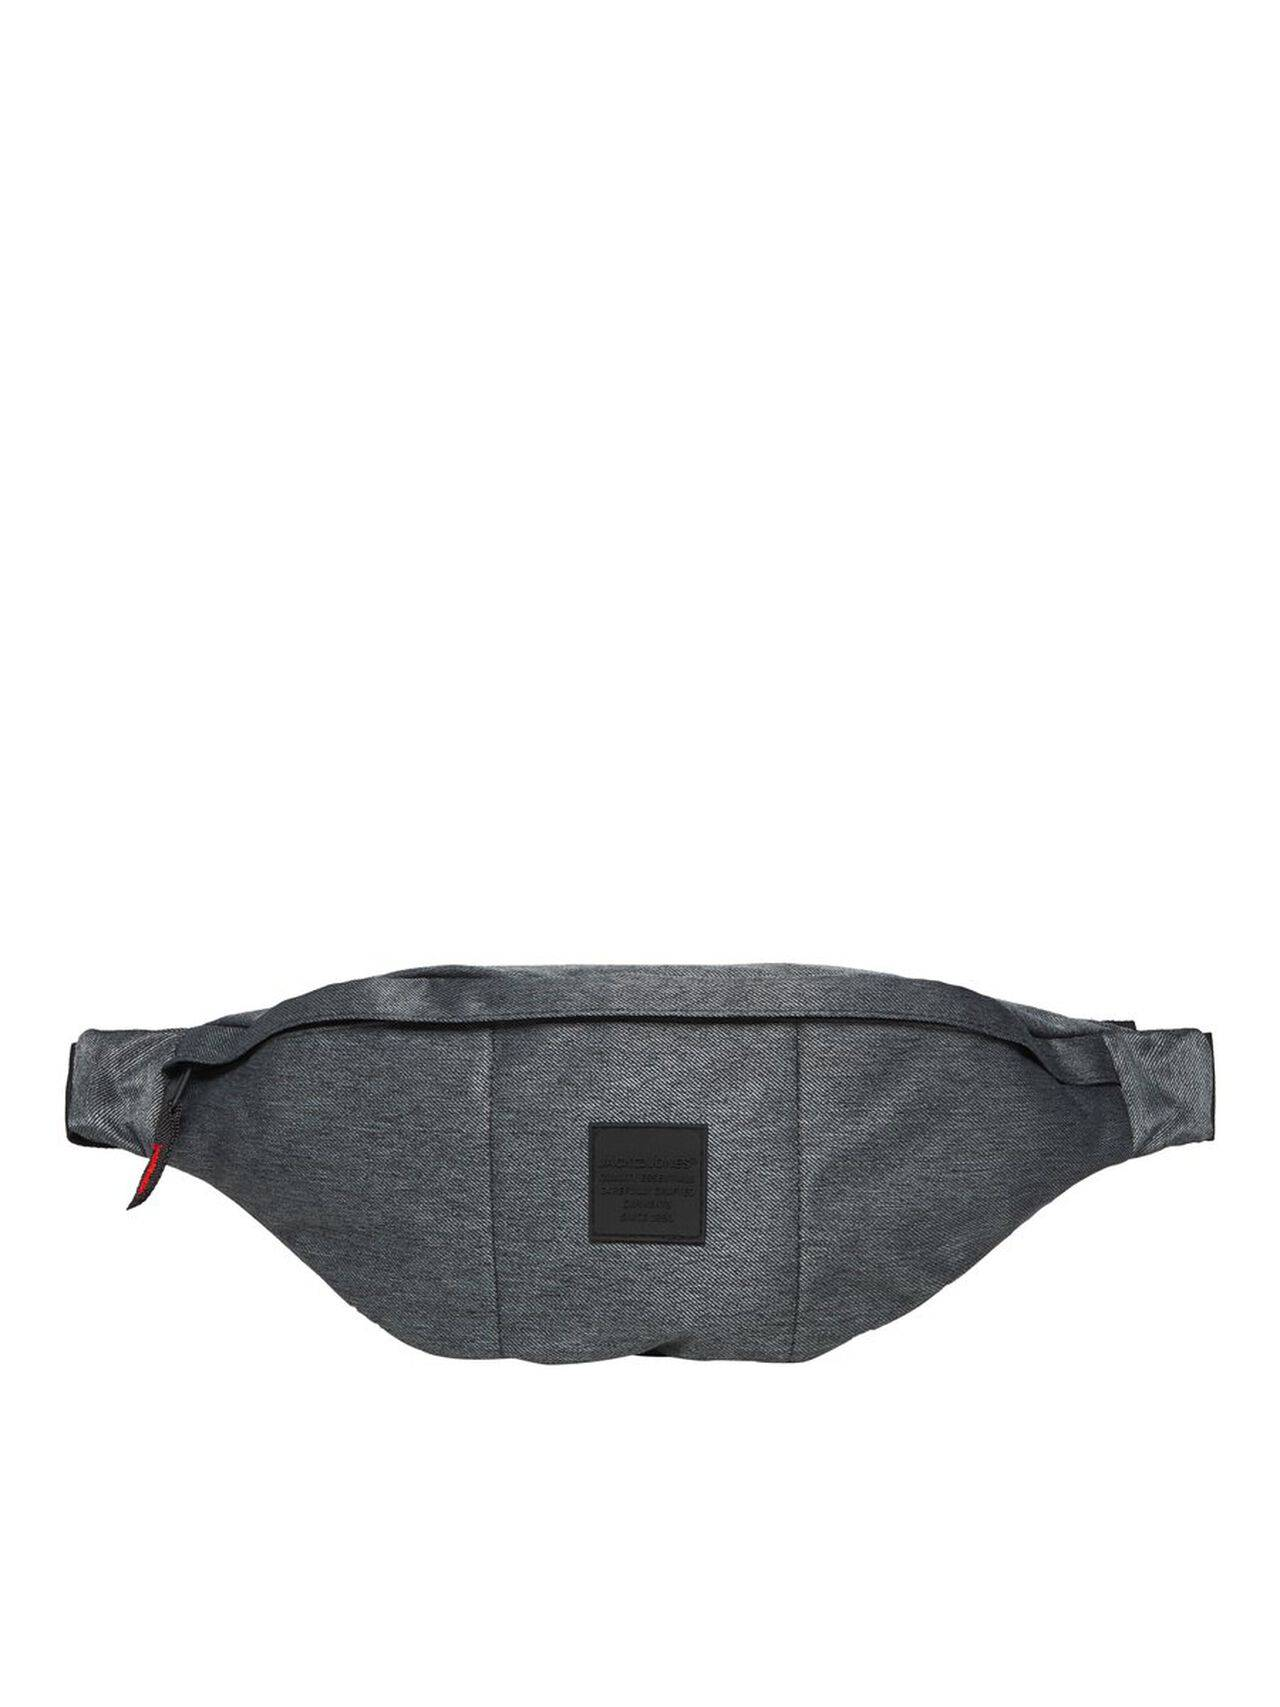 JACK & JONES Handy Bum Bum Bag Men Grey DarkGreyMelange